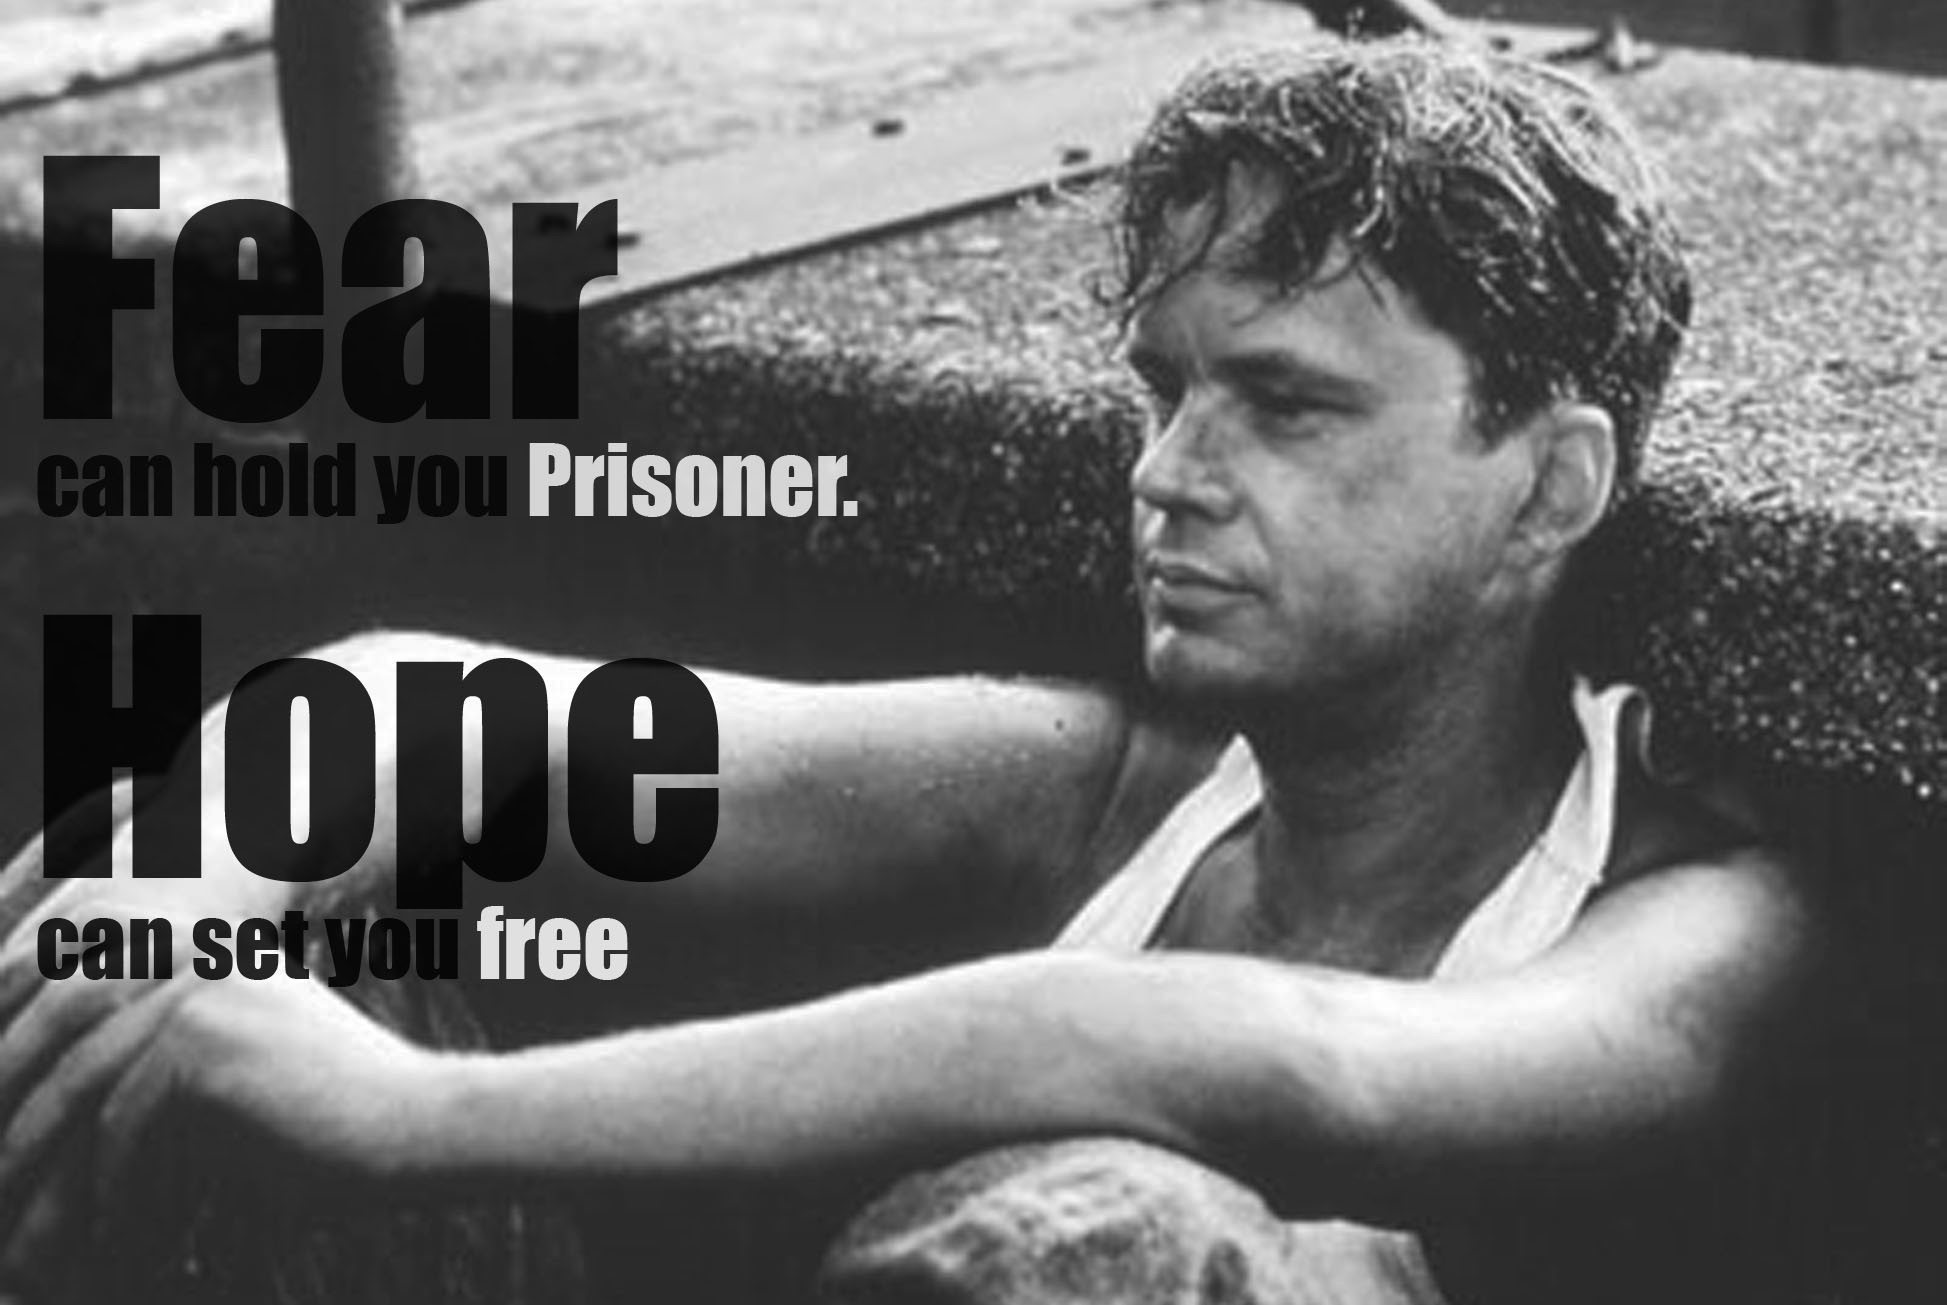 The Shawshank Redemption Wallpapers 71 images 1947x1305